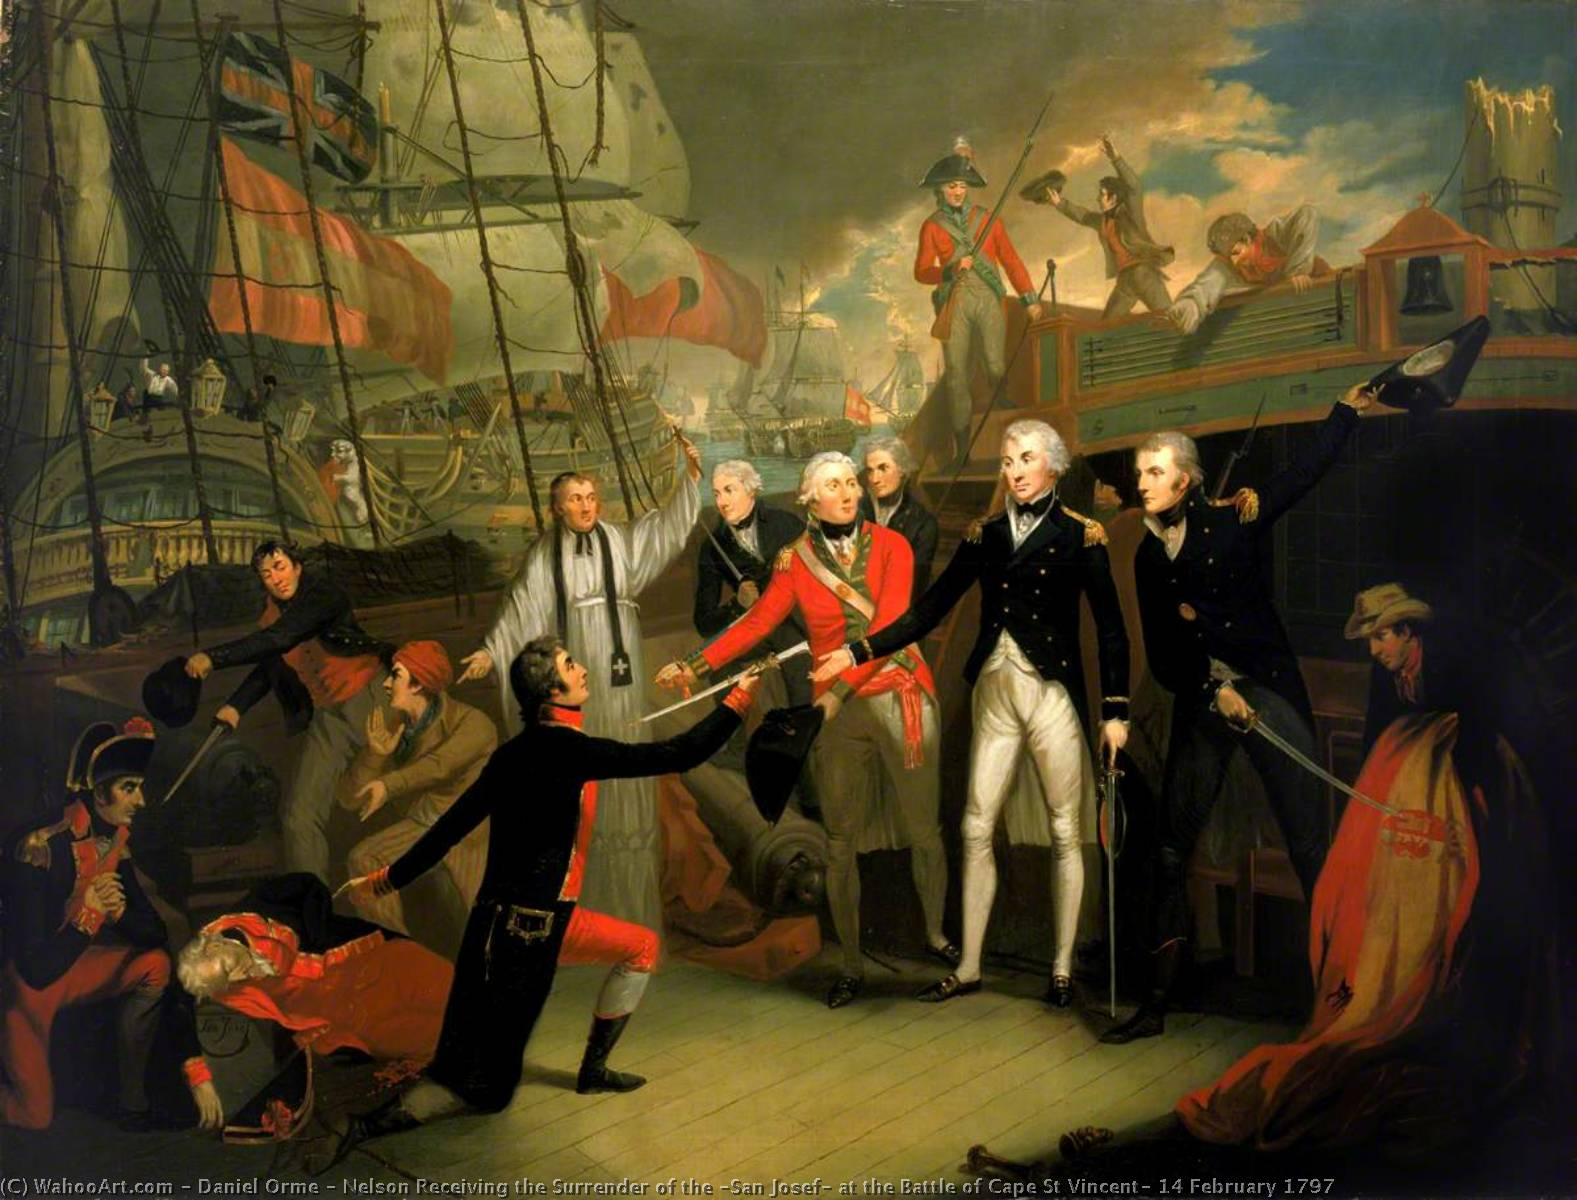 Nelson Receiving the Surrender of the `San Josef` at the Battle of Cape St Vincent, 14 February 1797, 1799 by Daniel Orme | Museum Quality Reproductions | WahooArt.com